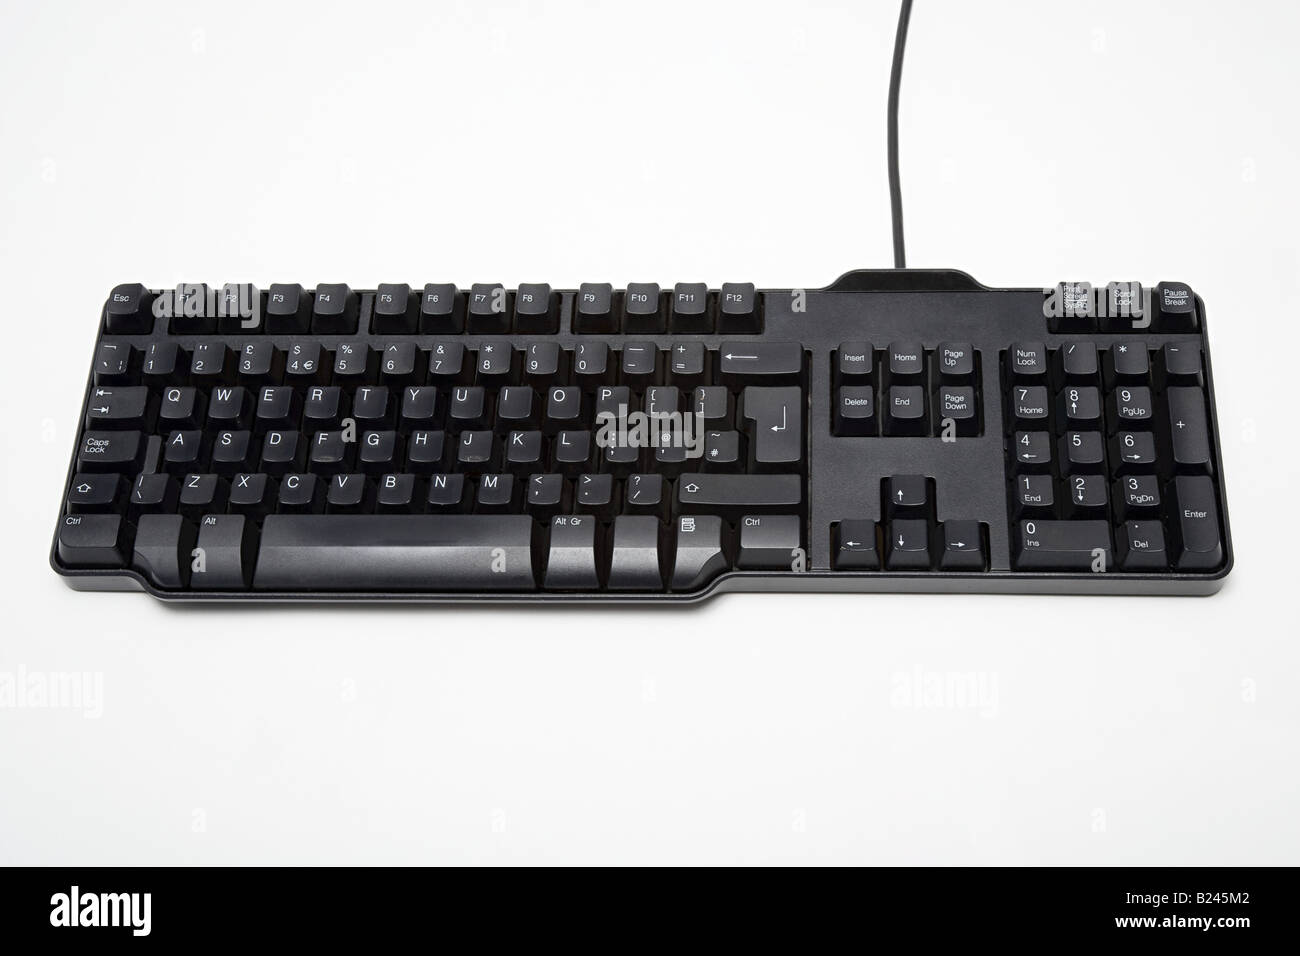 Computer keyboard - Stock Image